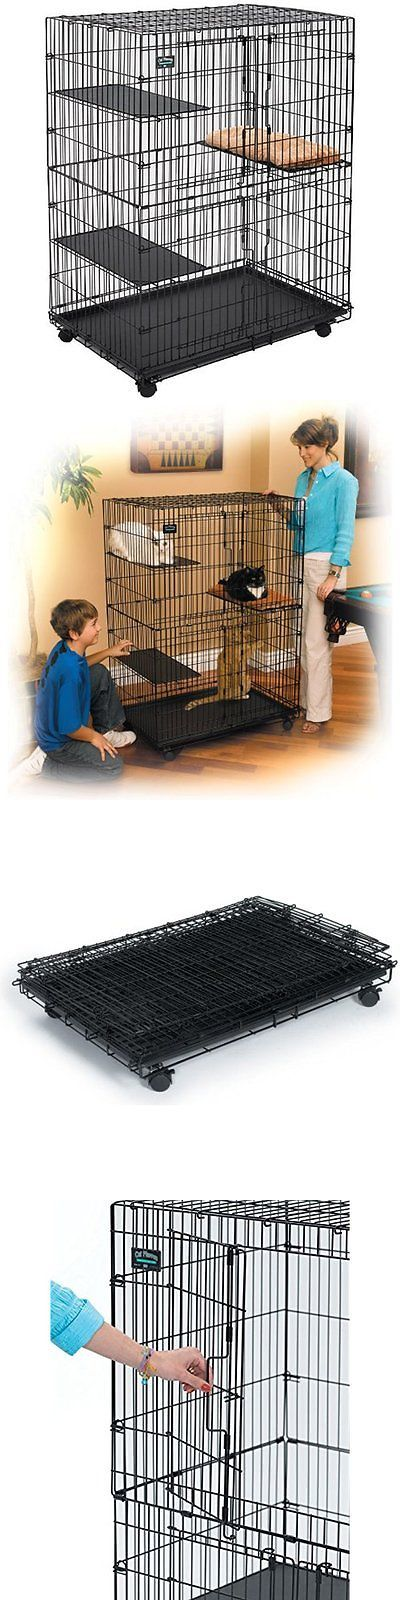 Carriers and Crates 116362: Cat Playpen / Cat Home BUY IT NOW ONLY: $132.78